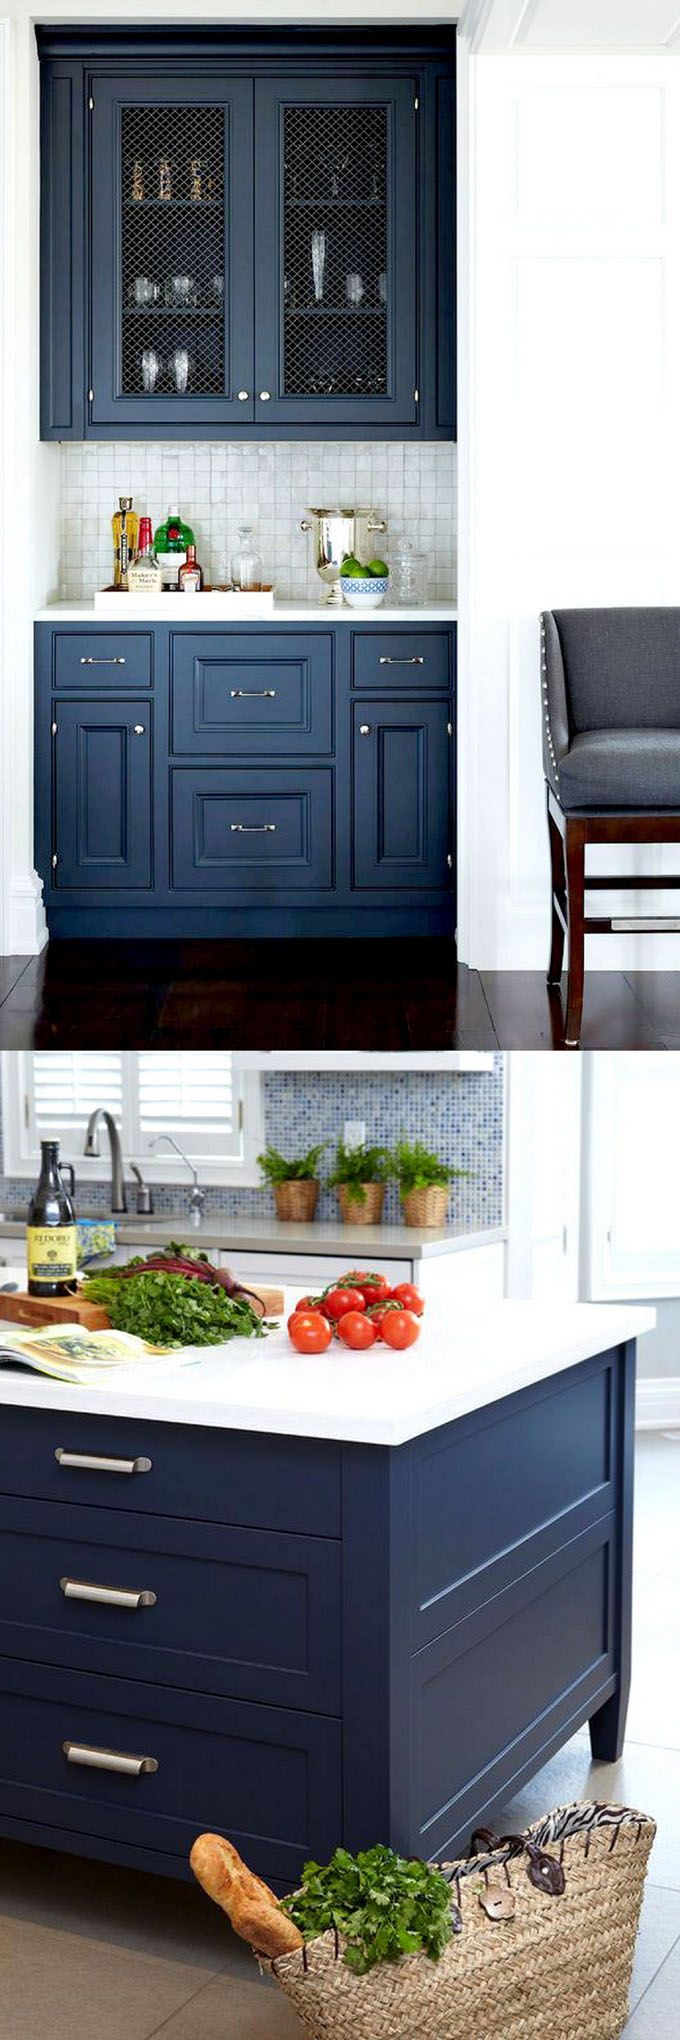 best navy blue paint colorBest 25 Hale navy ideas on Pinterest  Navy blue and grey living